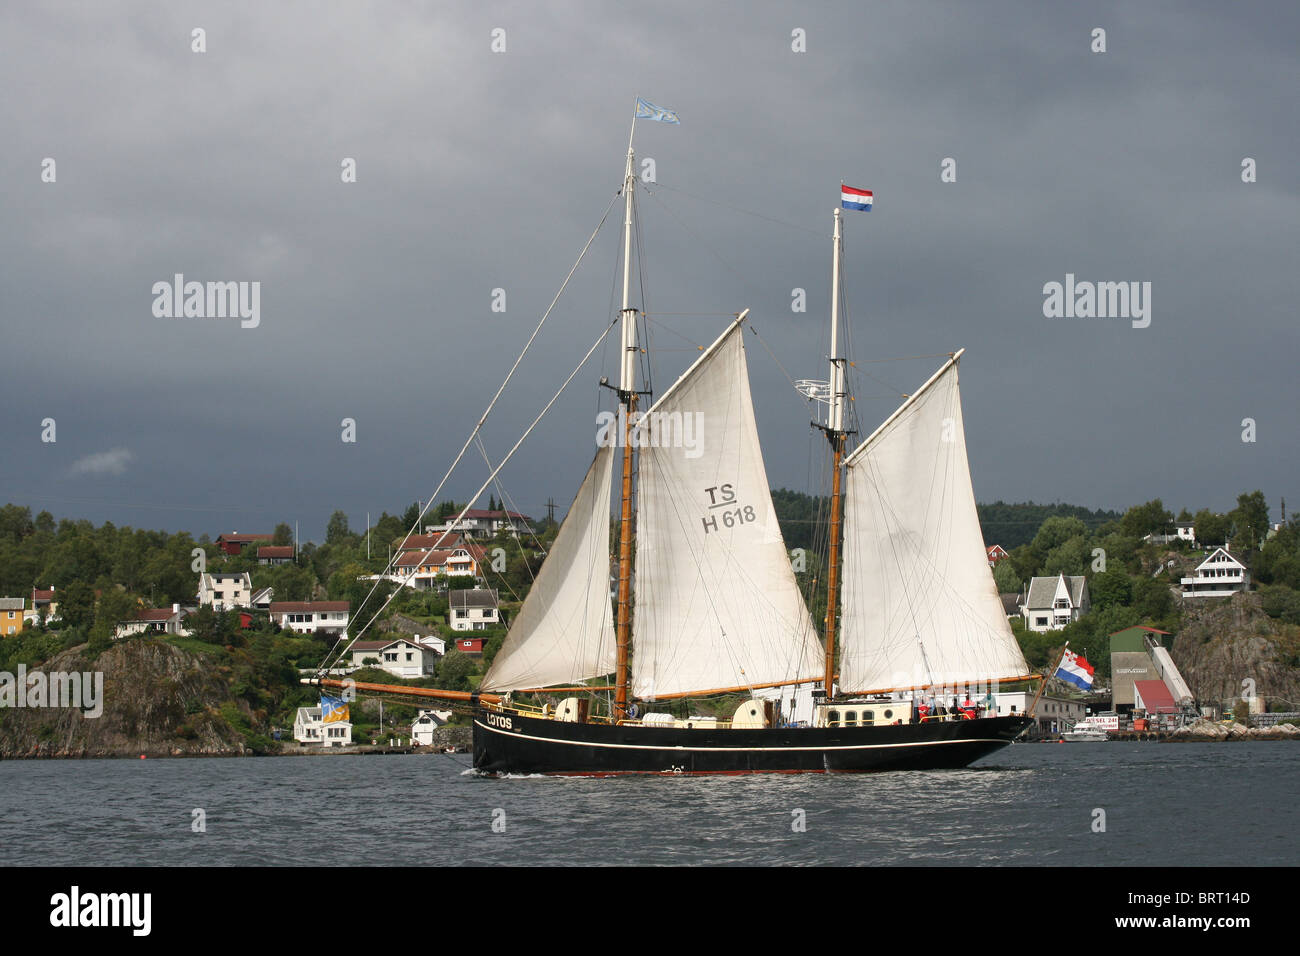 Lotos, The Tall Ships Races 2008, Bergen - Stock Image